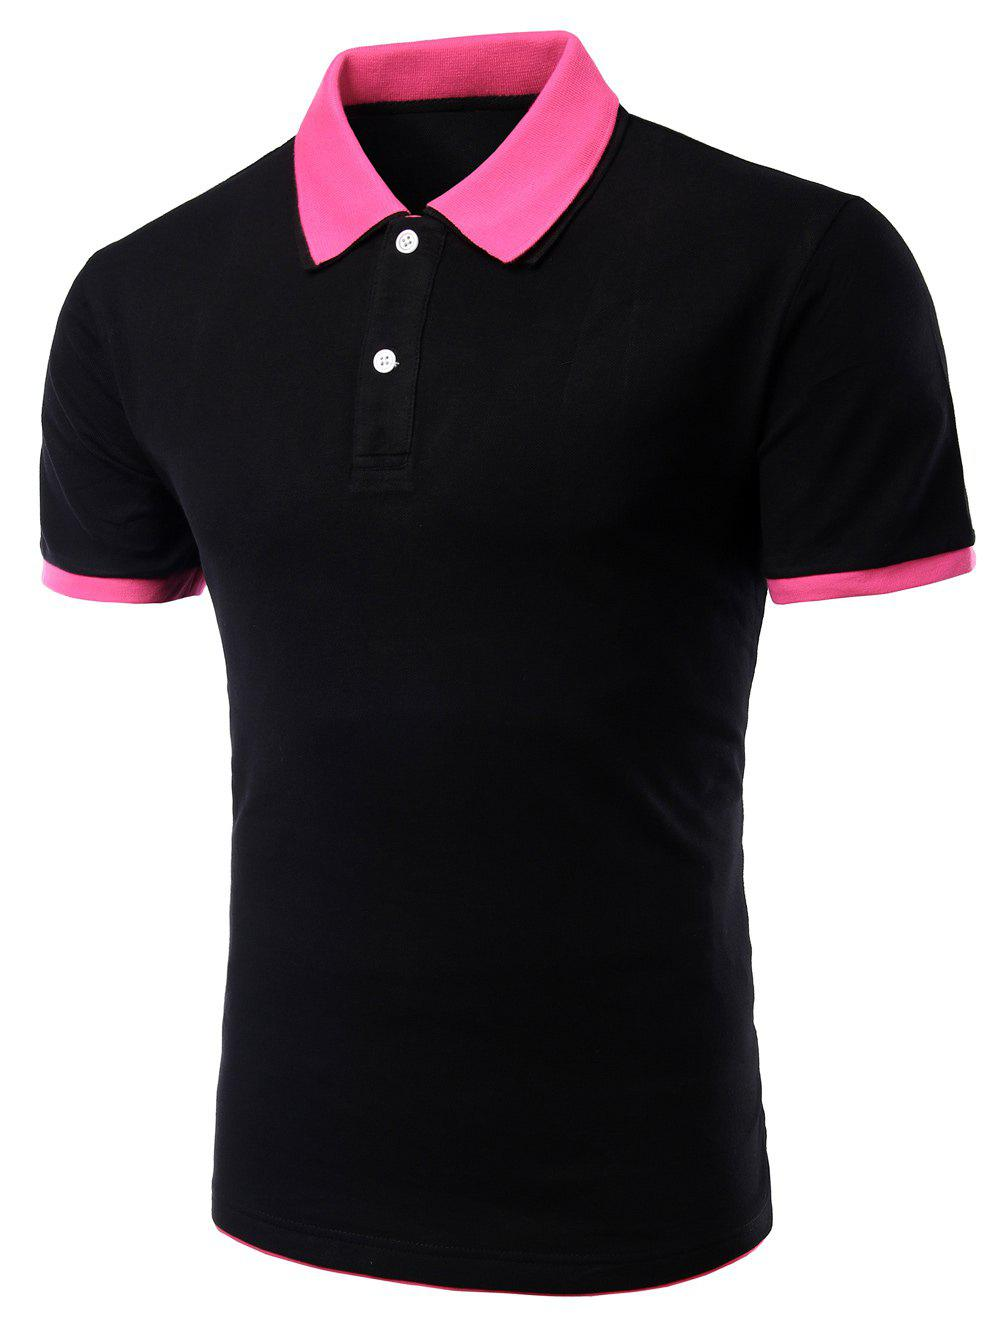 Men's Turn-down Collar Solid  Color Short Sleeves Polo T-Shirt - BLACK/ROSE RED 2XL